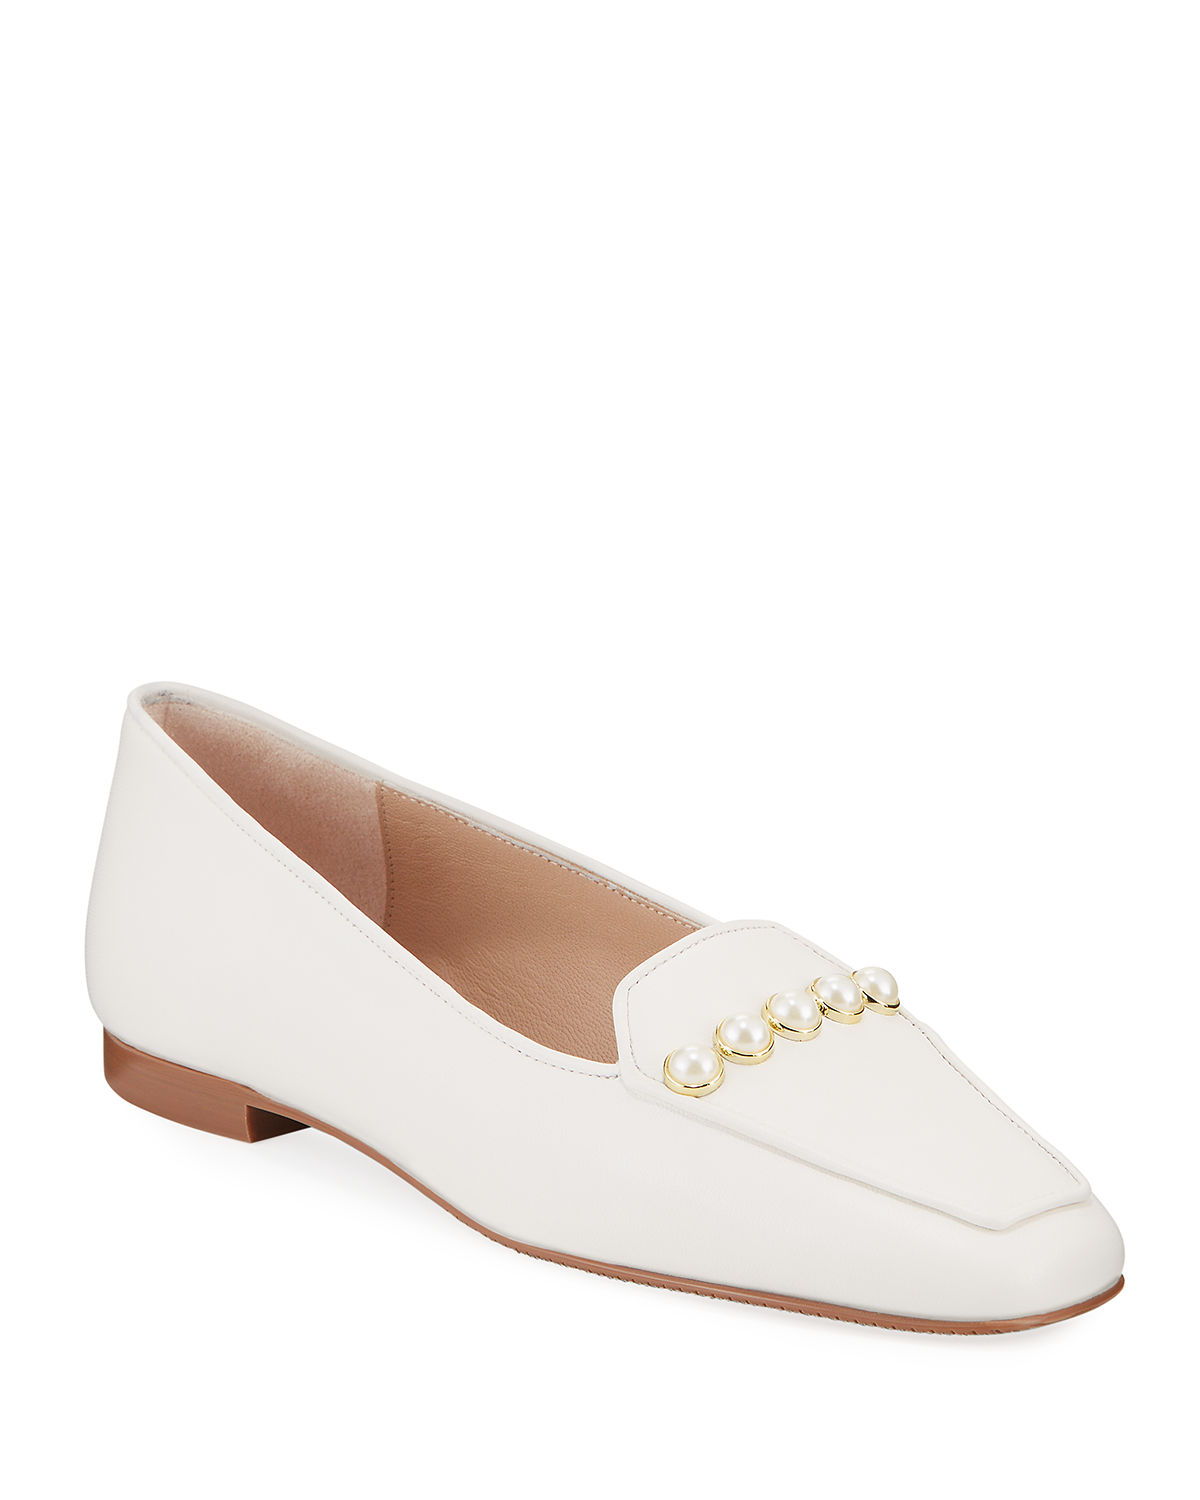 Stuart Weitzman Flats ROSIE PEARLY-STUDDED LEATHER FLAT LOAFERS